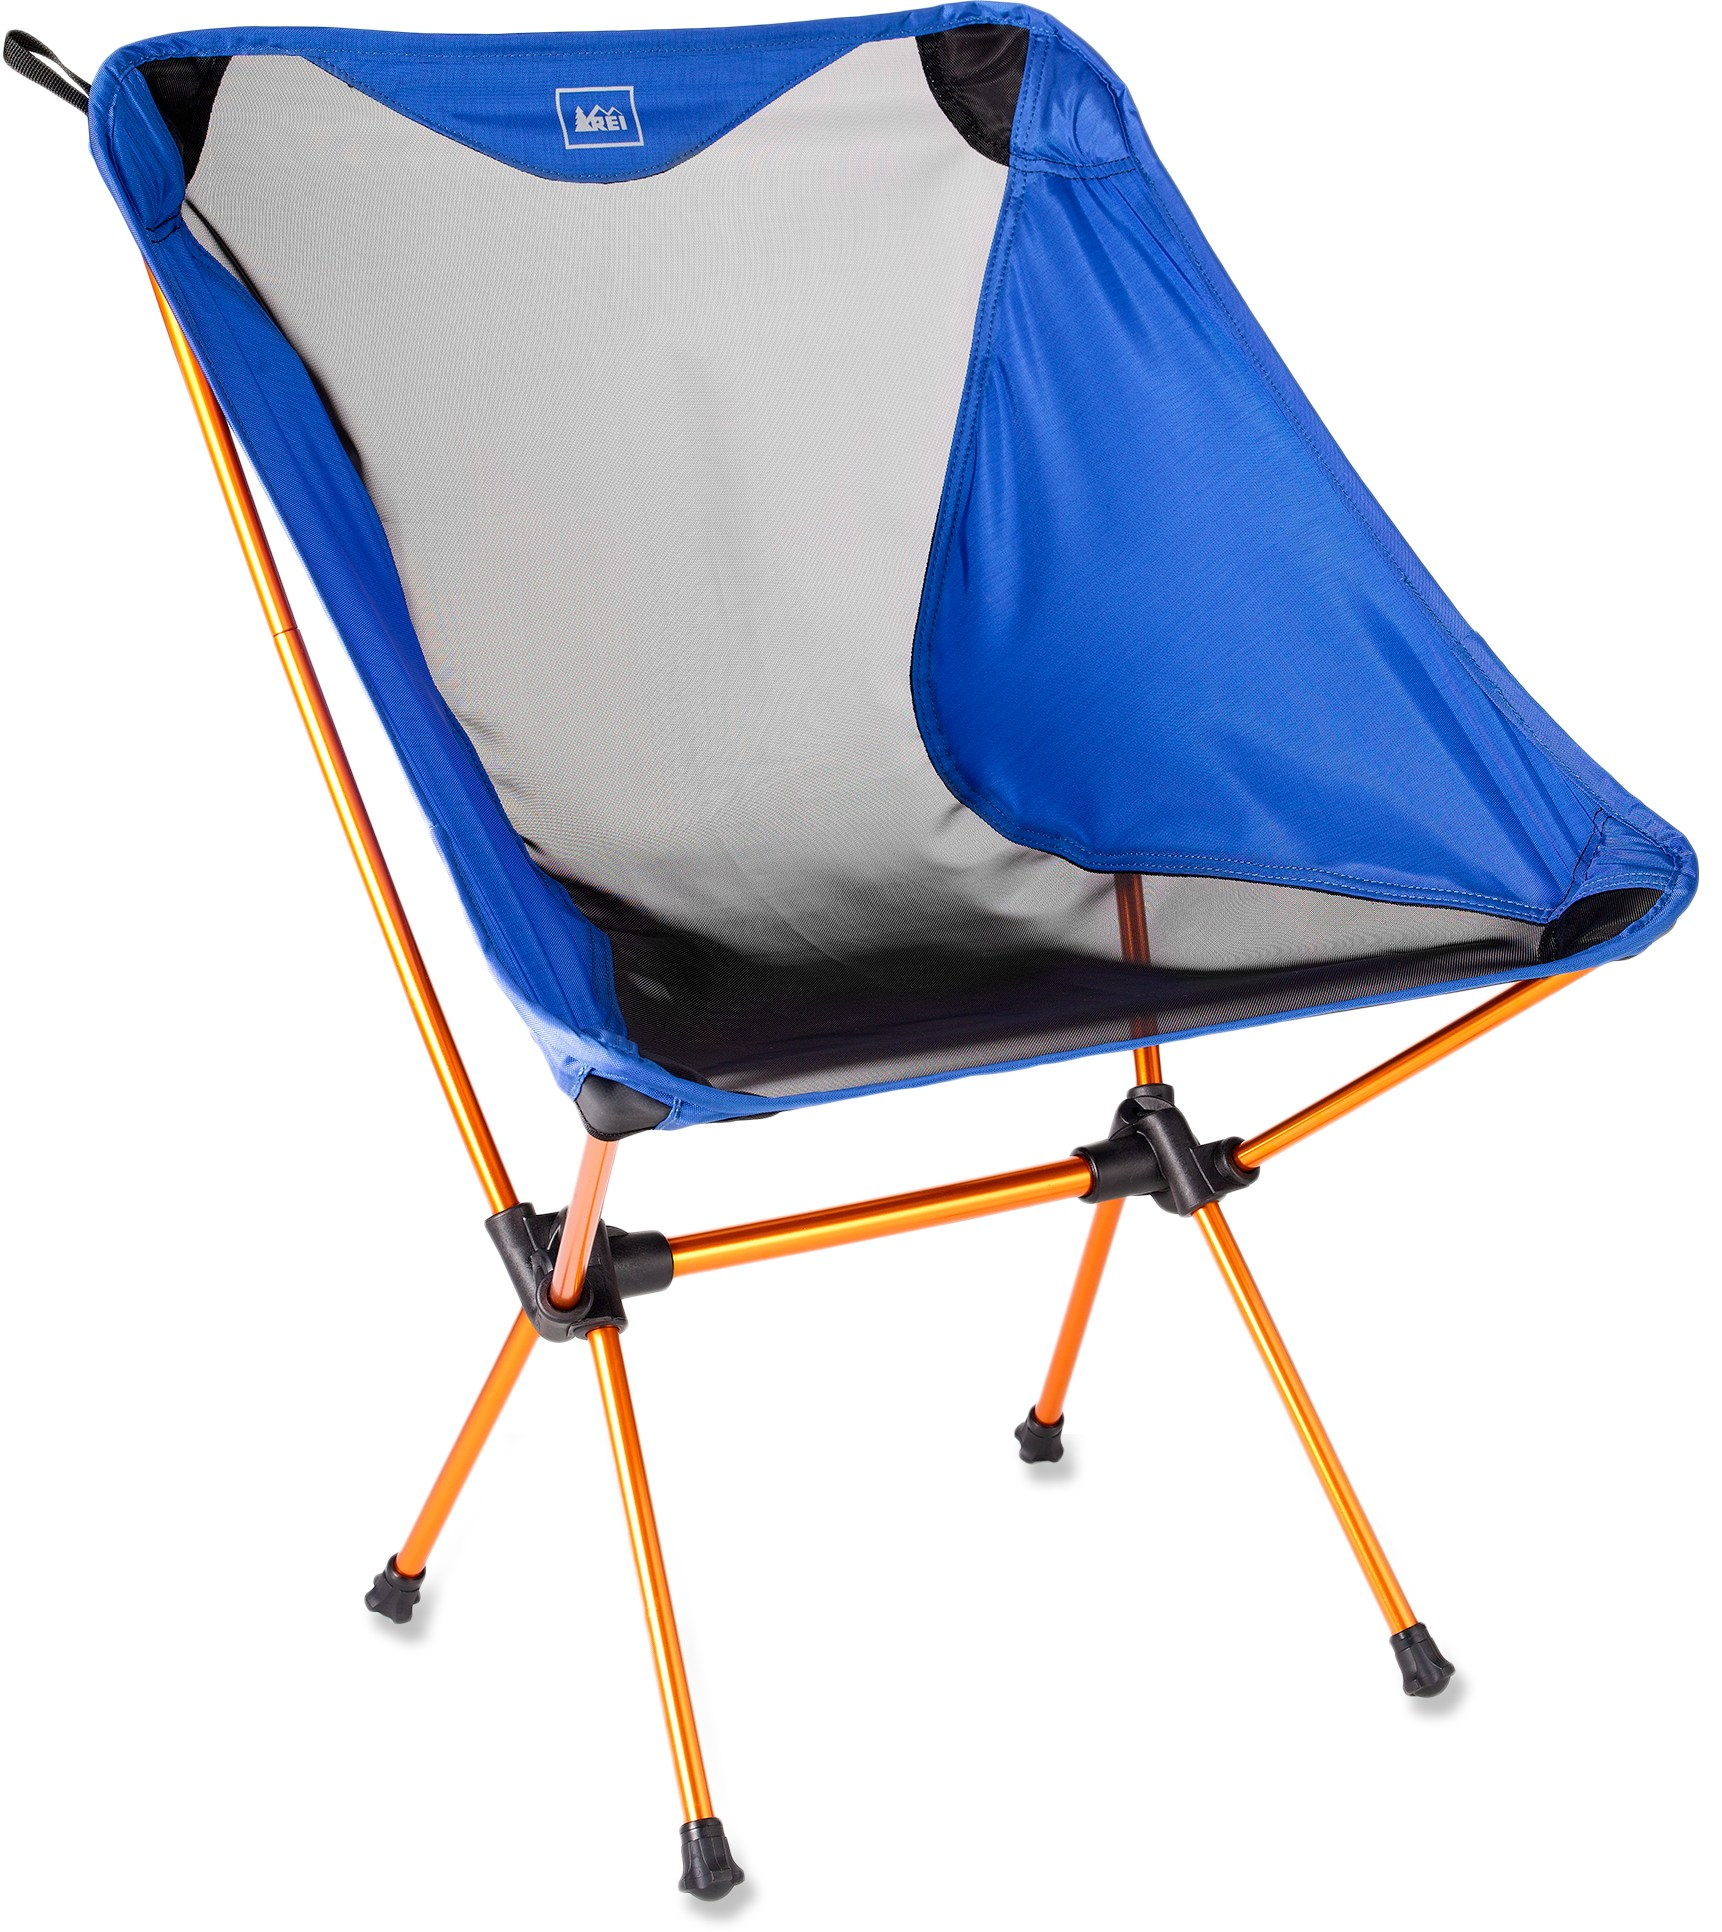 Awesome camping chair for Rei fishing gear